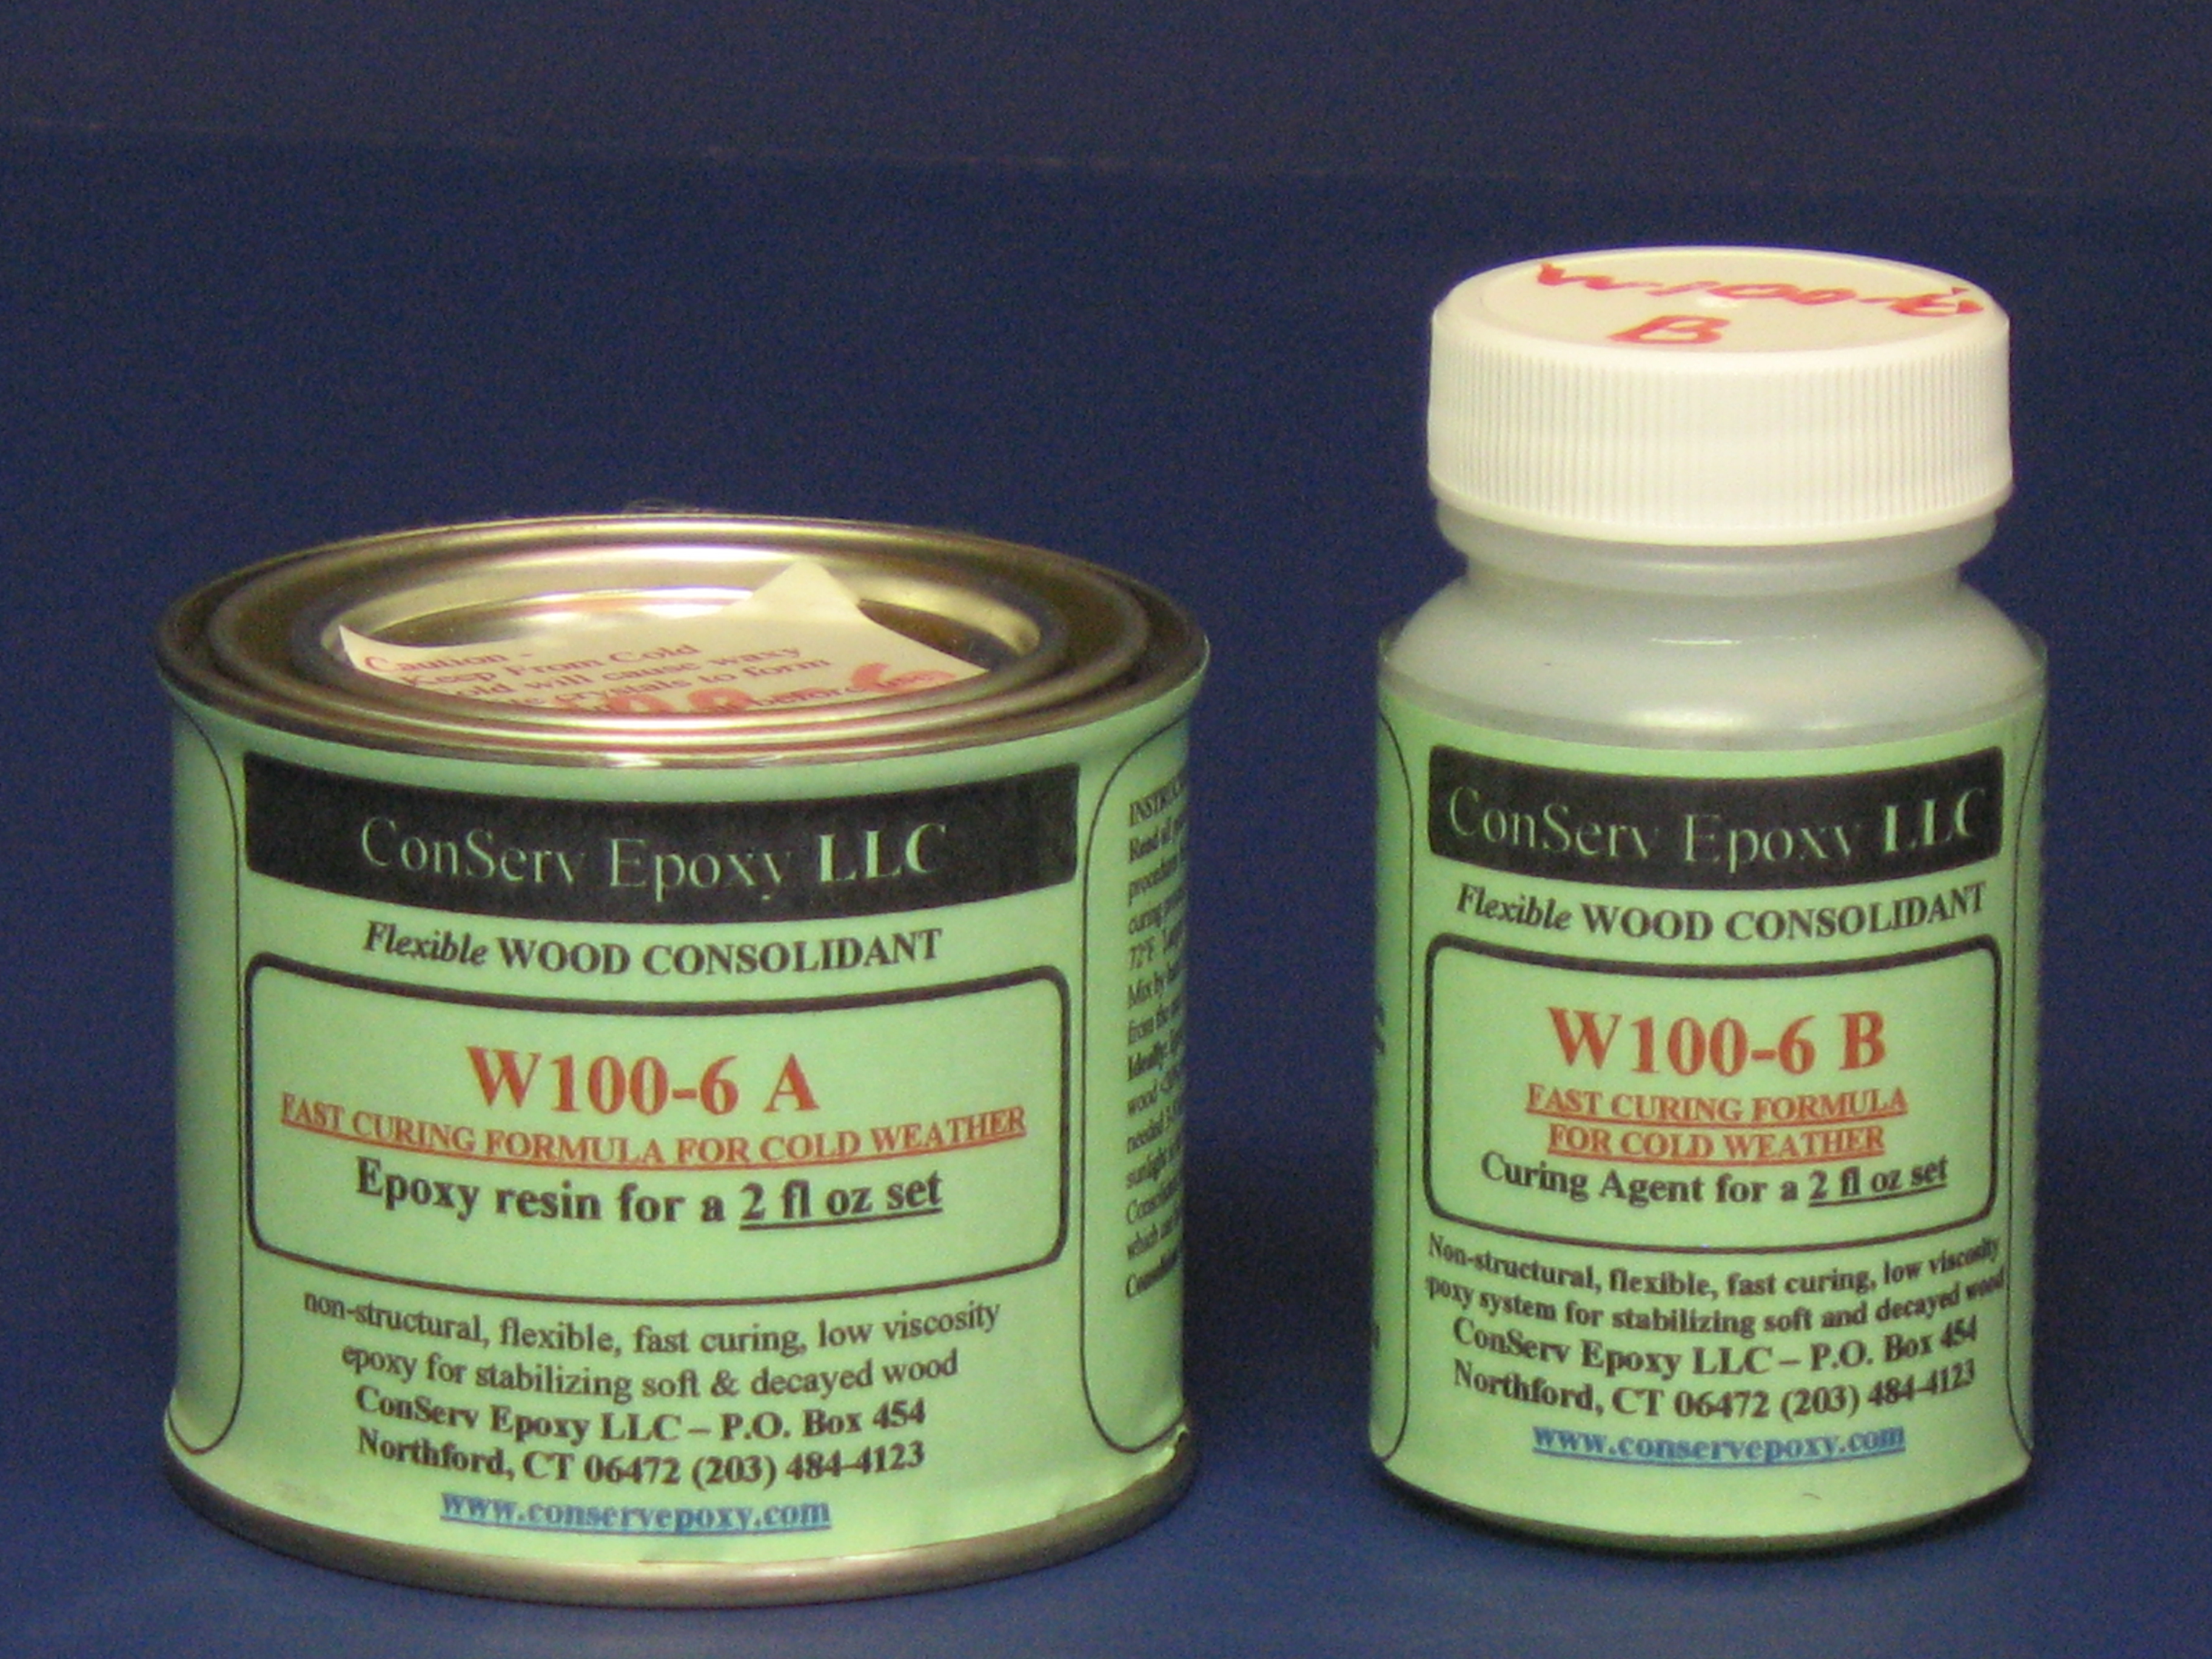 W100-6 Flexible Epoxy Consolidant Faster Curing - 2 fl oz